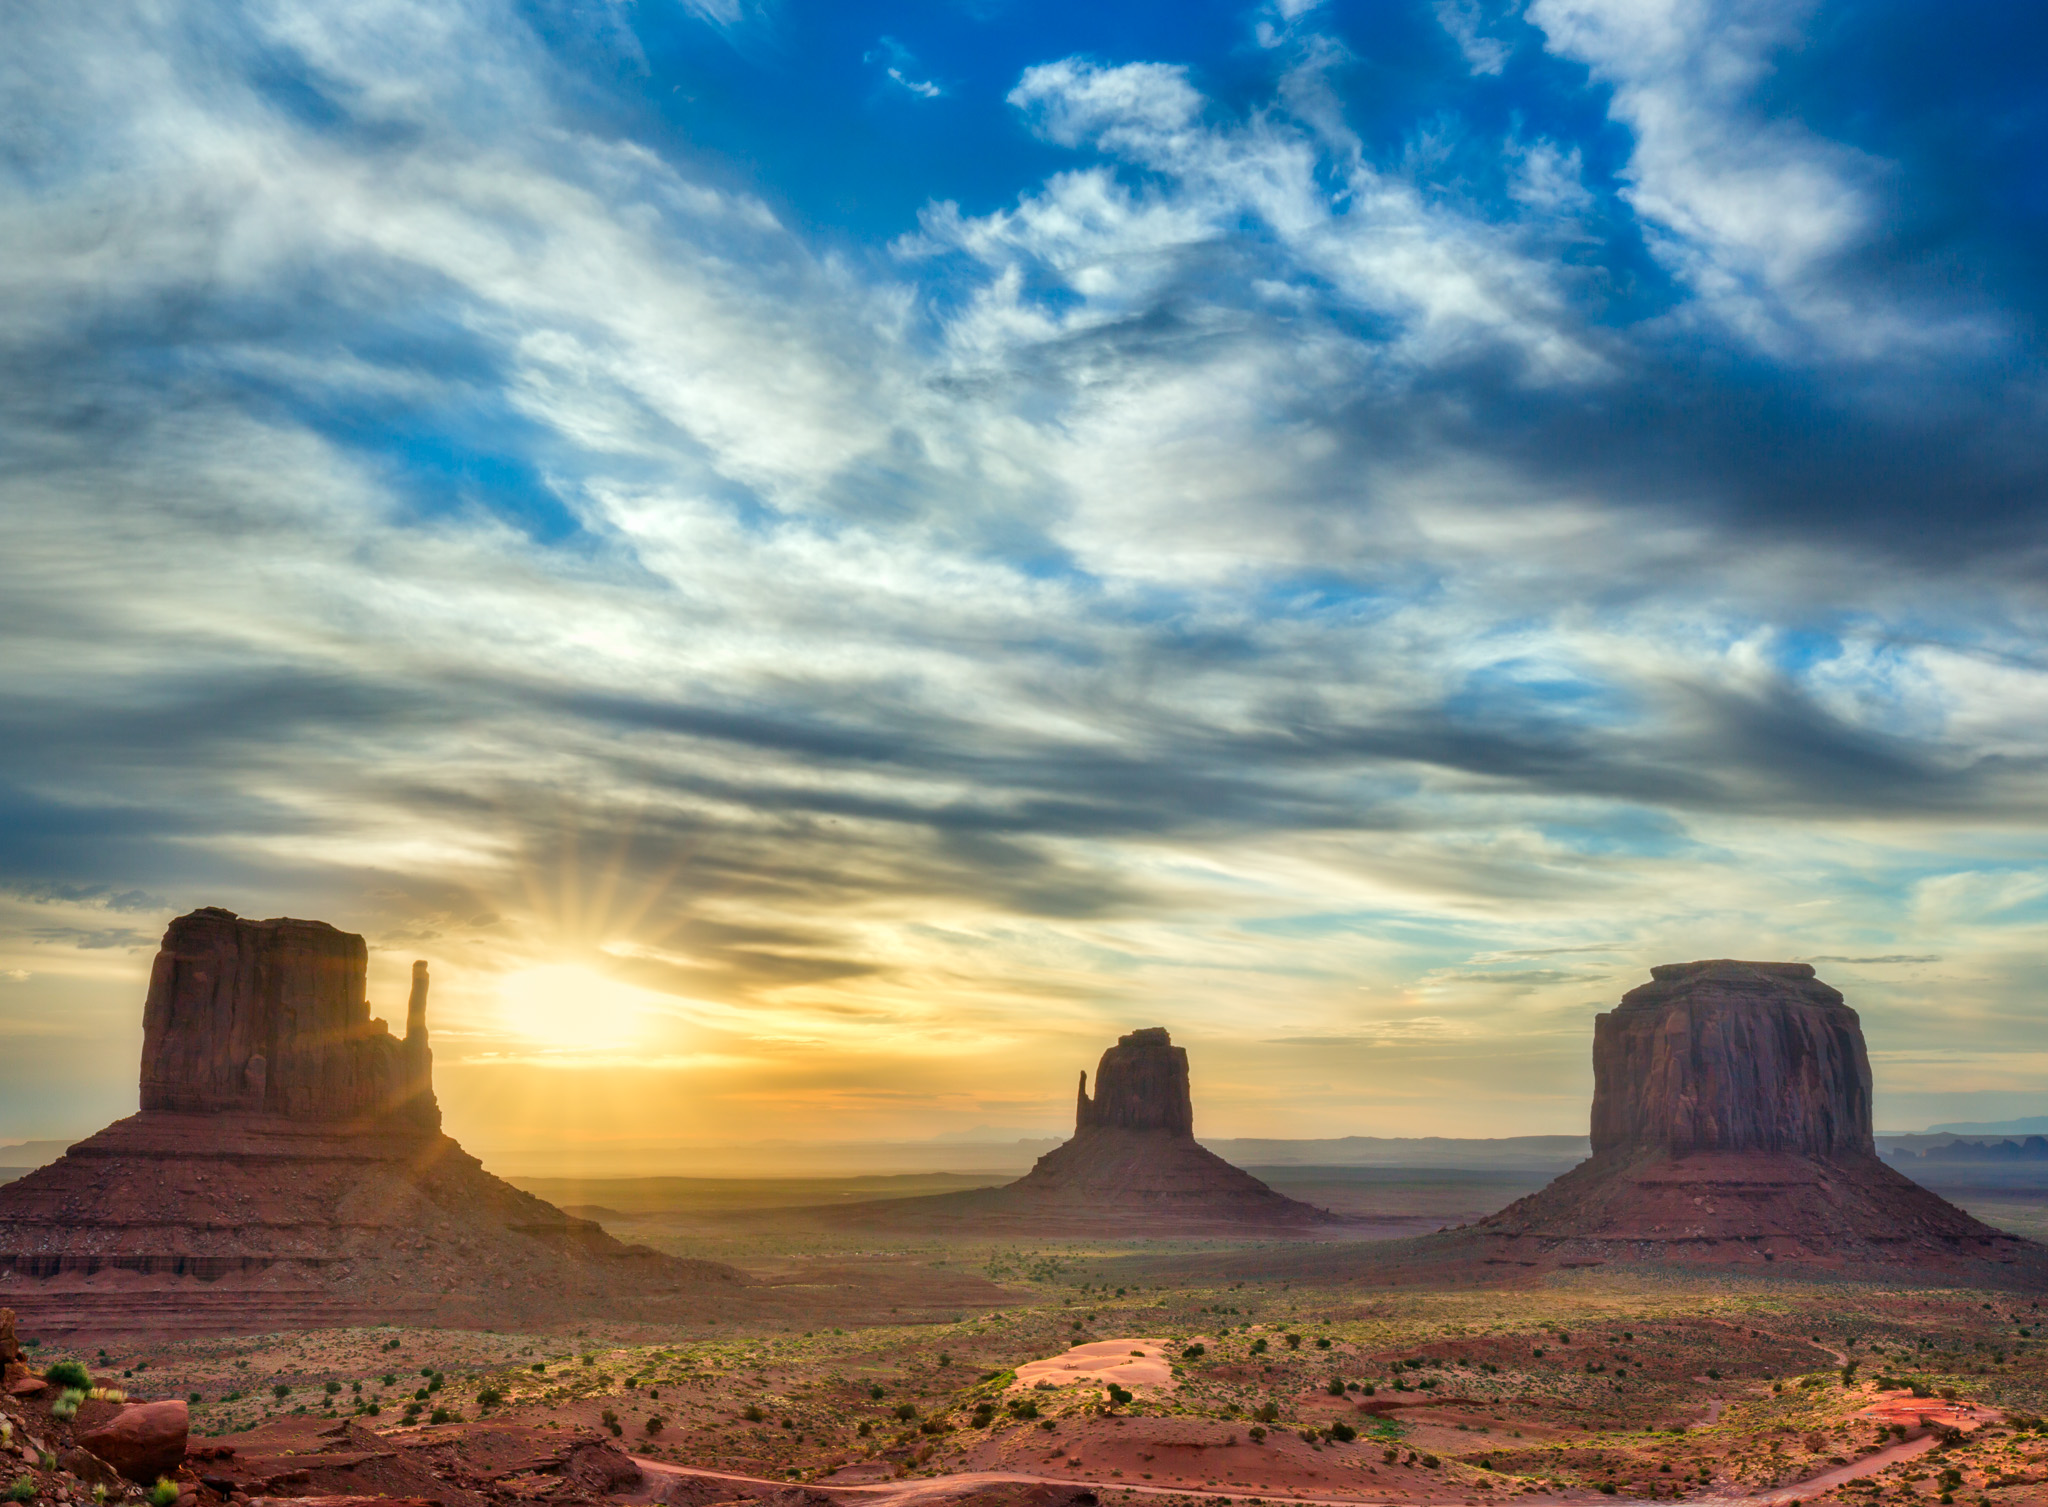 Monument Valley at sunrise. Image was made using 5D III and the 16-35mm f4 IS lens